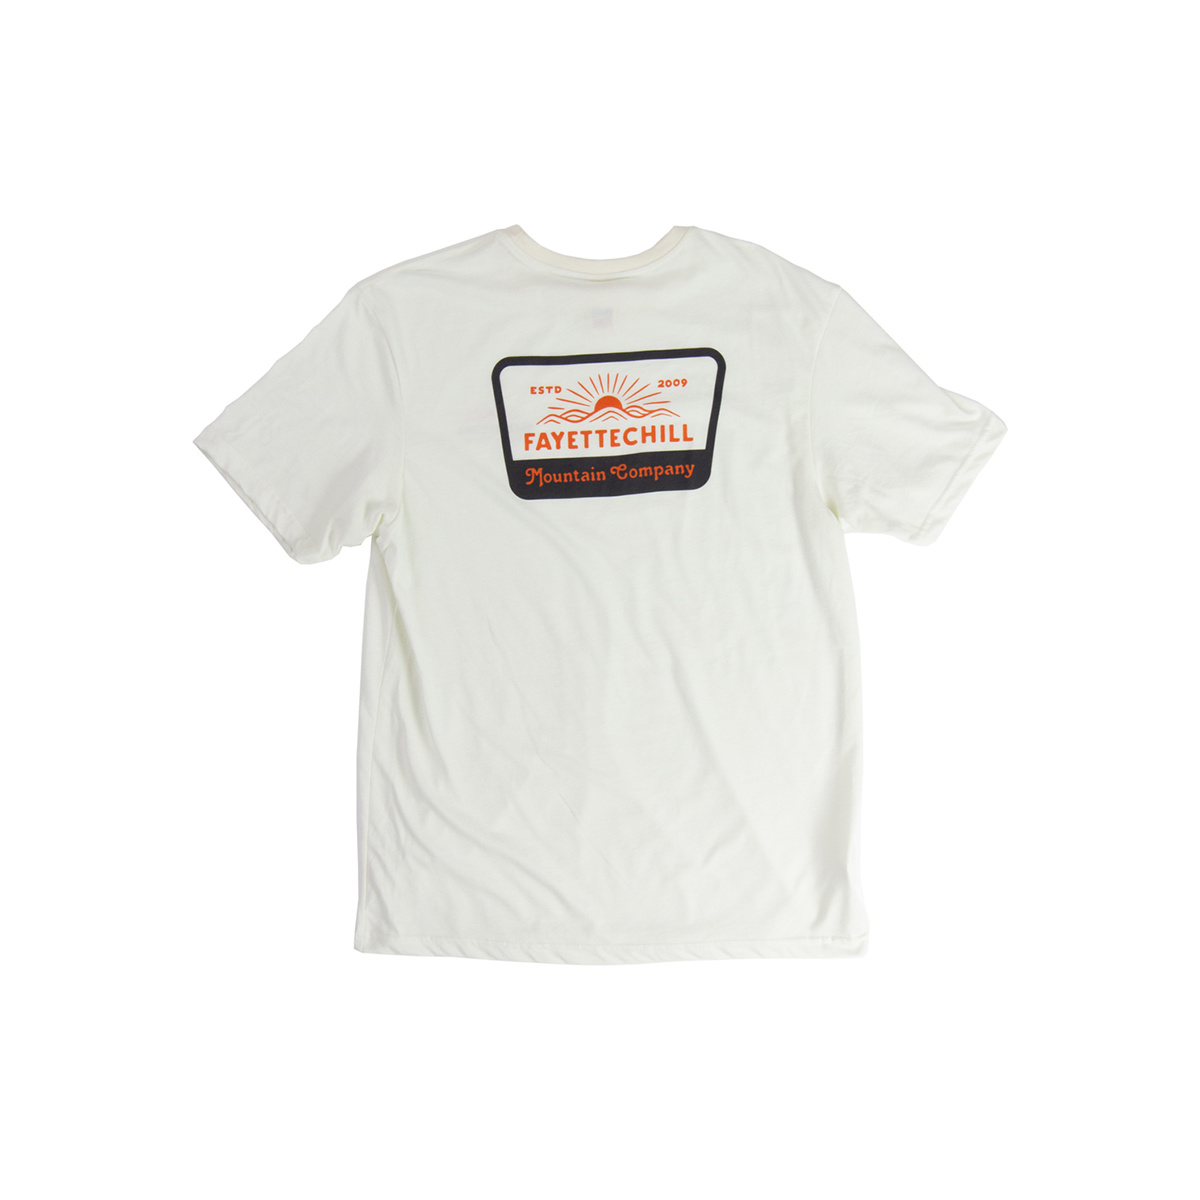 Fayettechill Landmark Short Sleeve